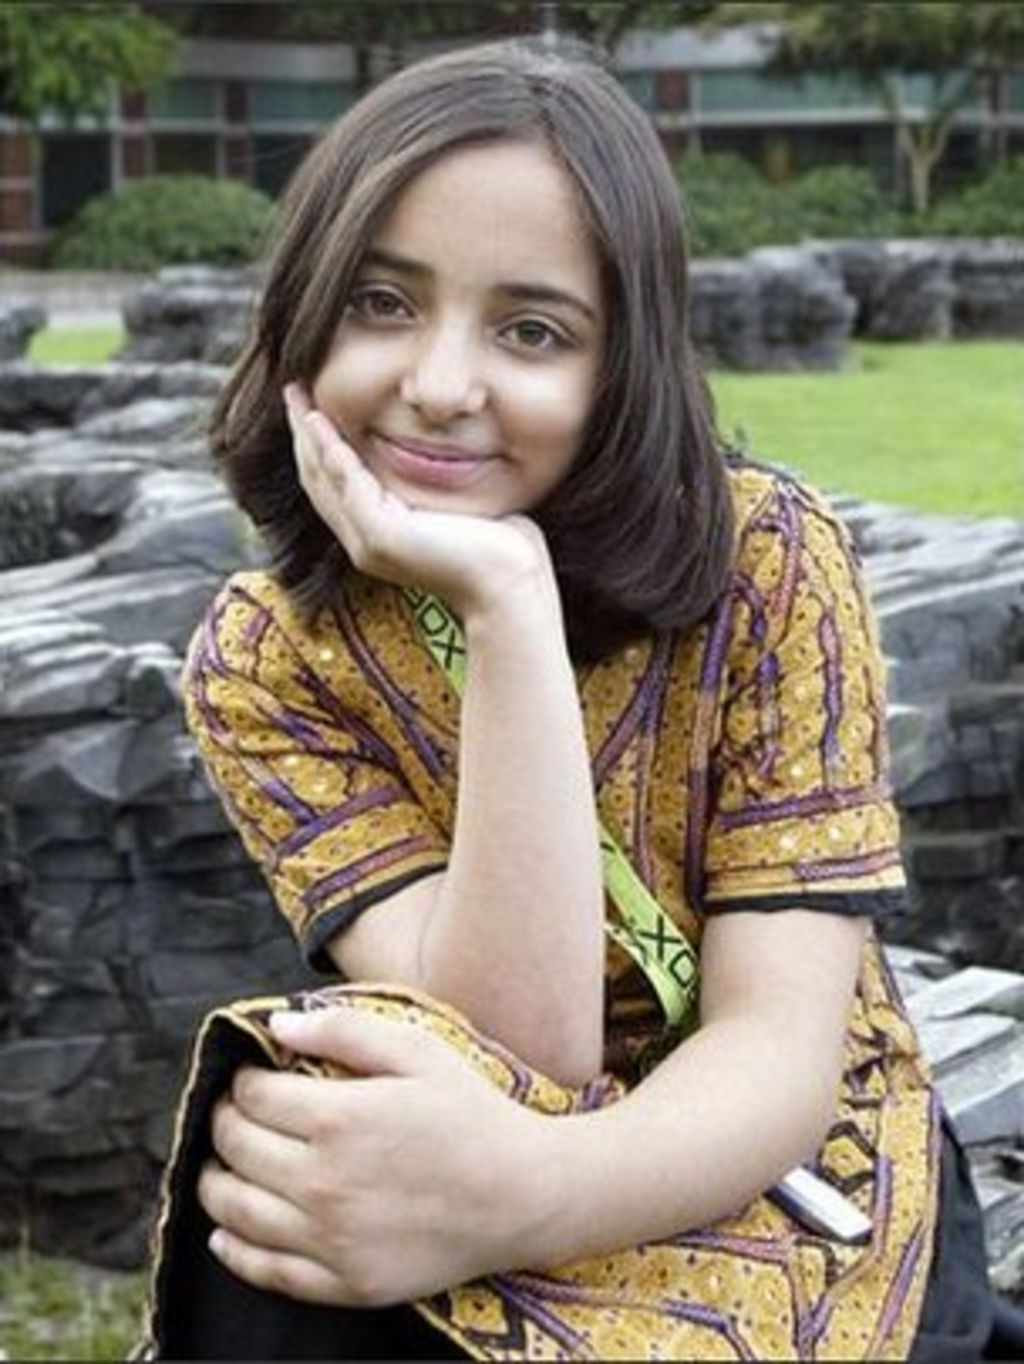 Arfa Karim was one of the adolescent technology record setters after becoming a Microsoft professional at the age of 9